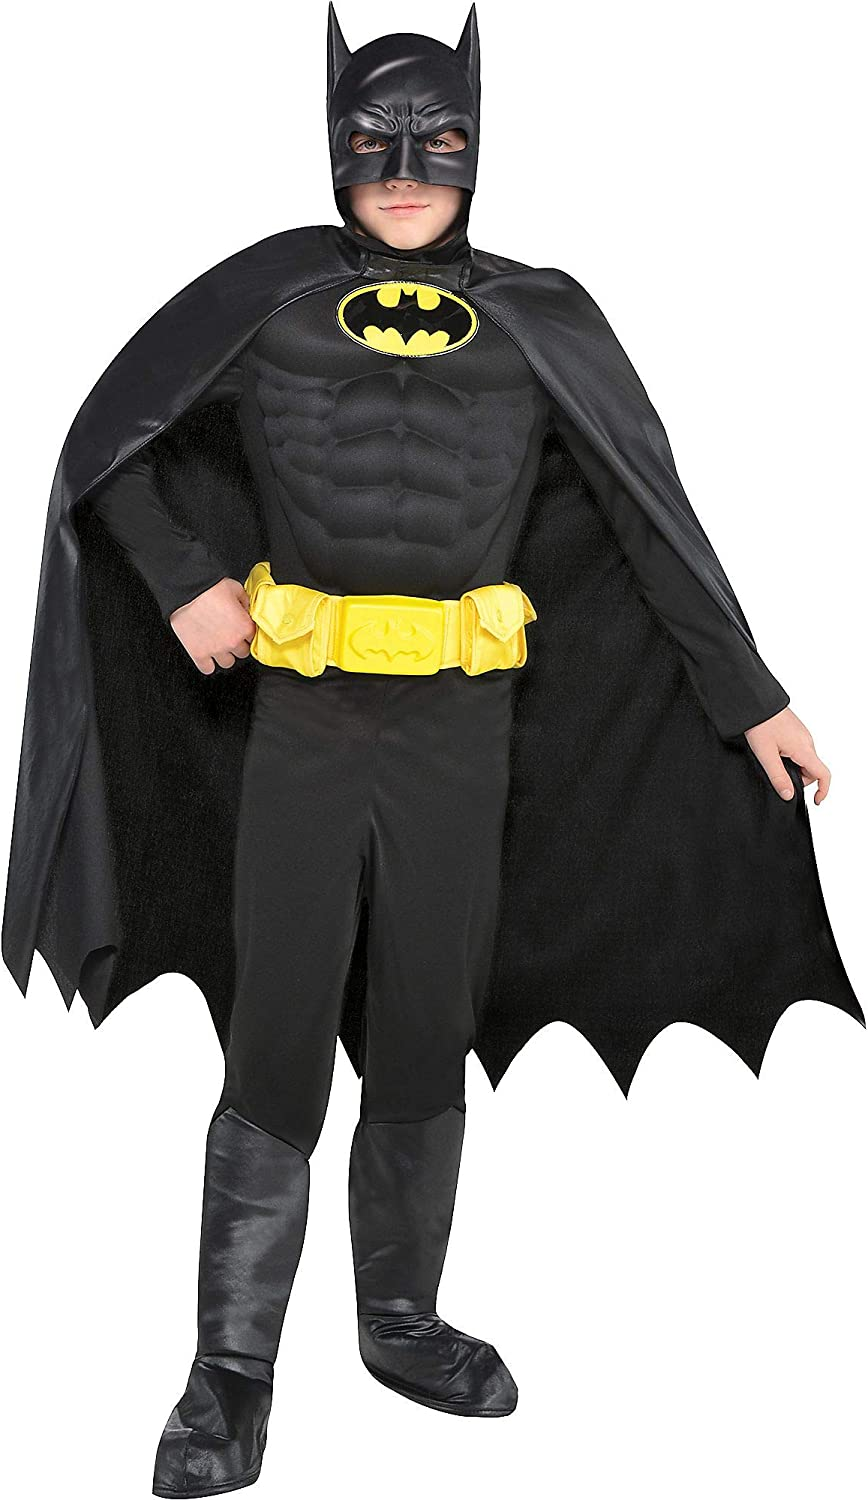 Suit Yourself Batman Muscle Costume Jumpsui Direct store Boys security for a Includes